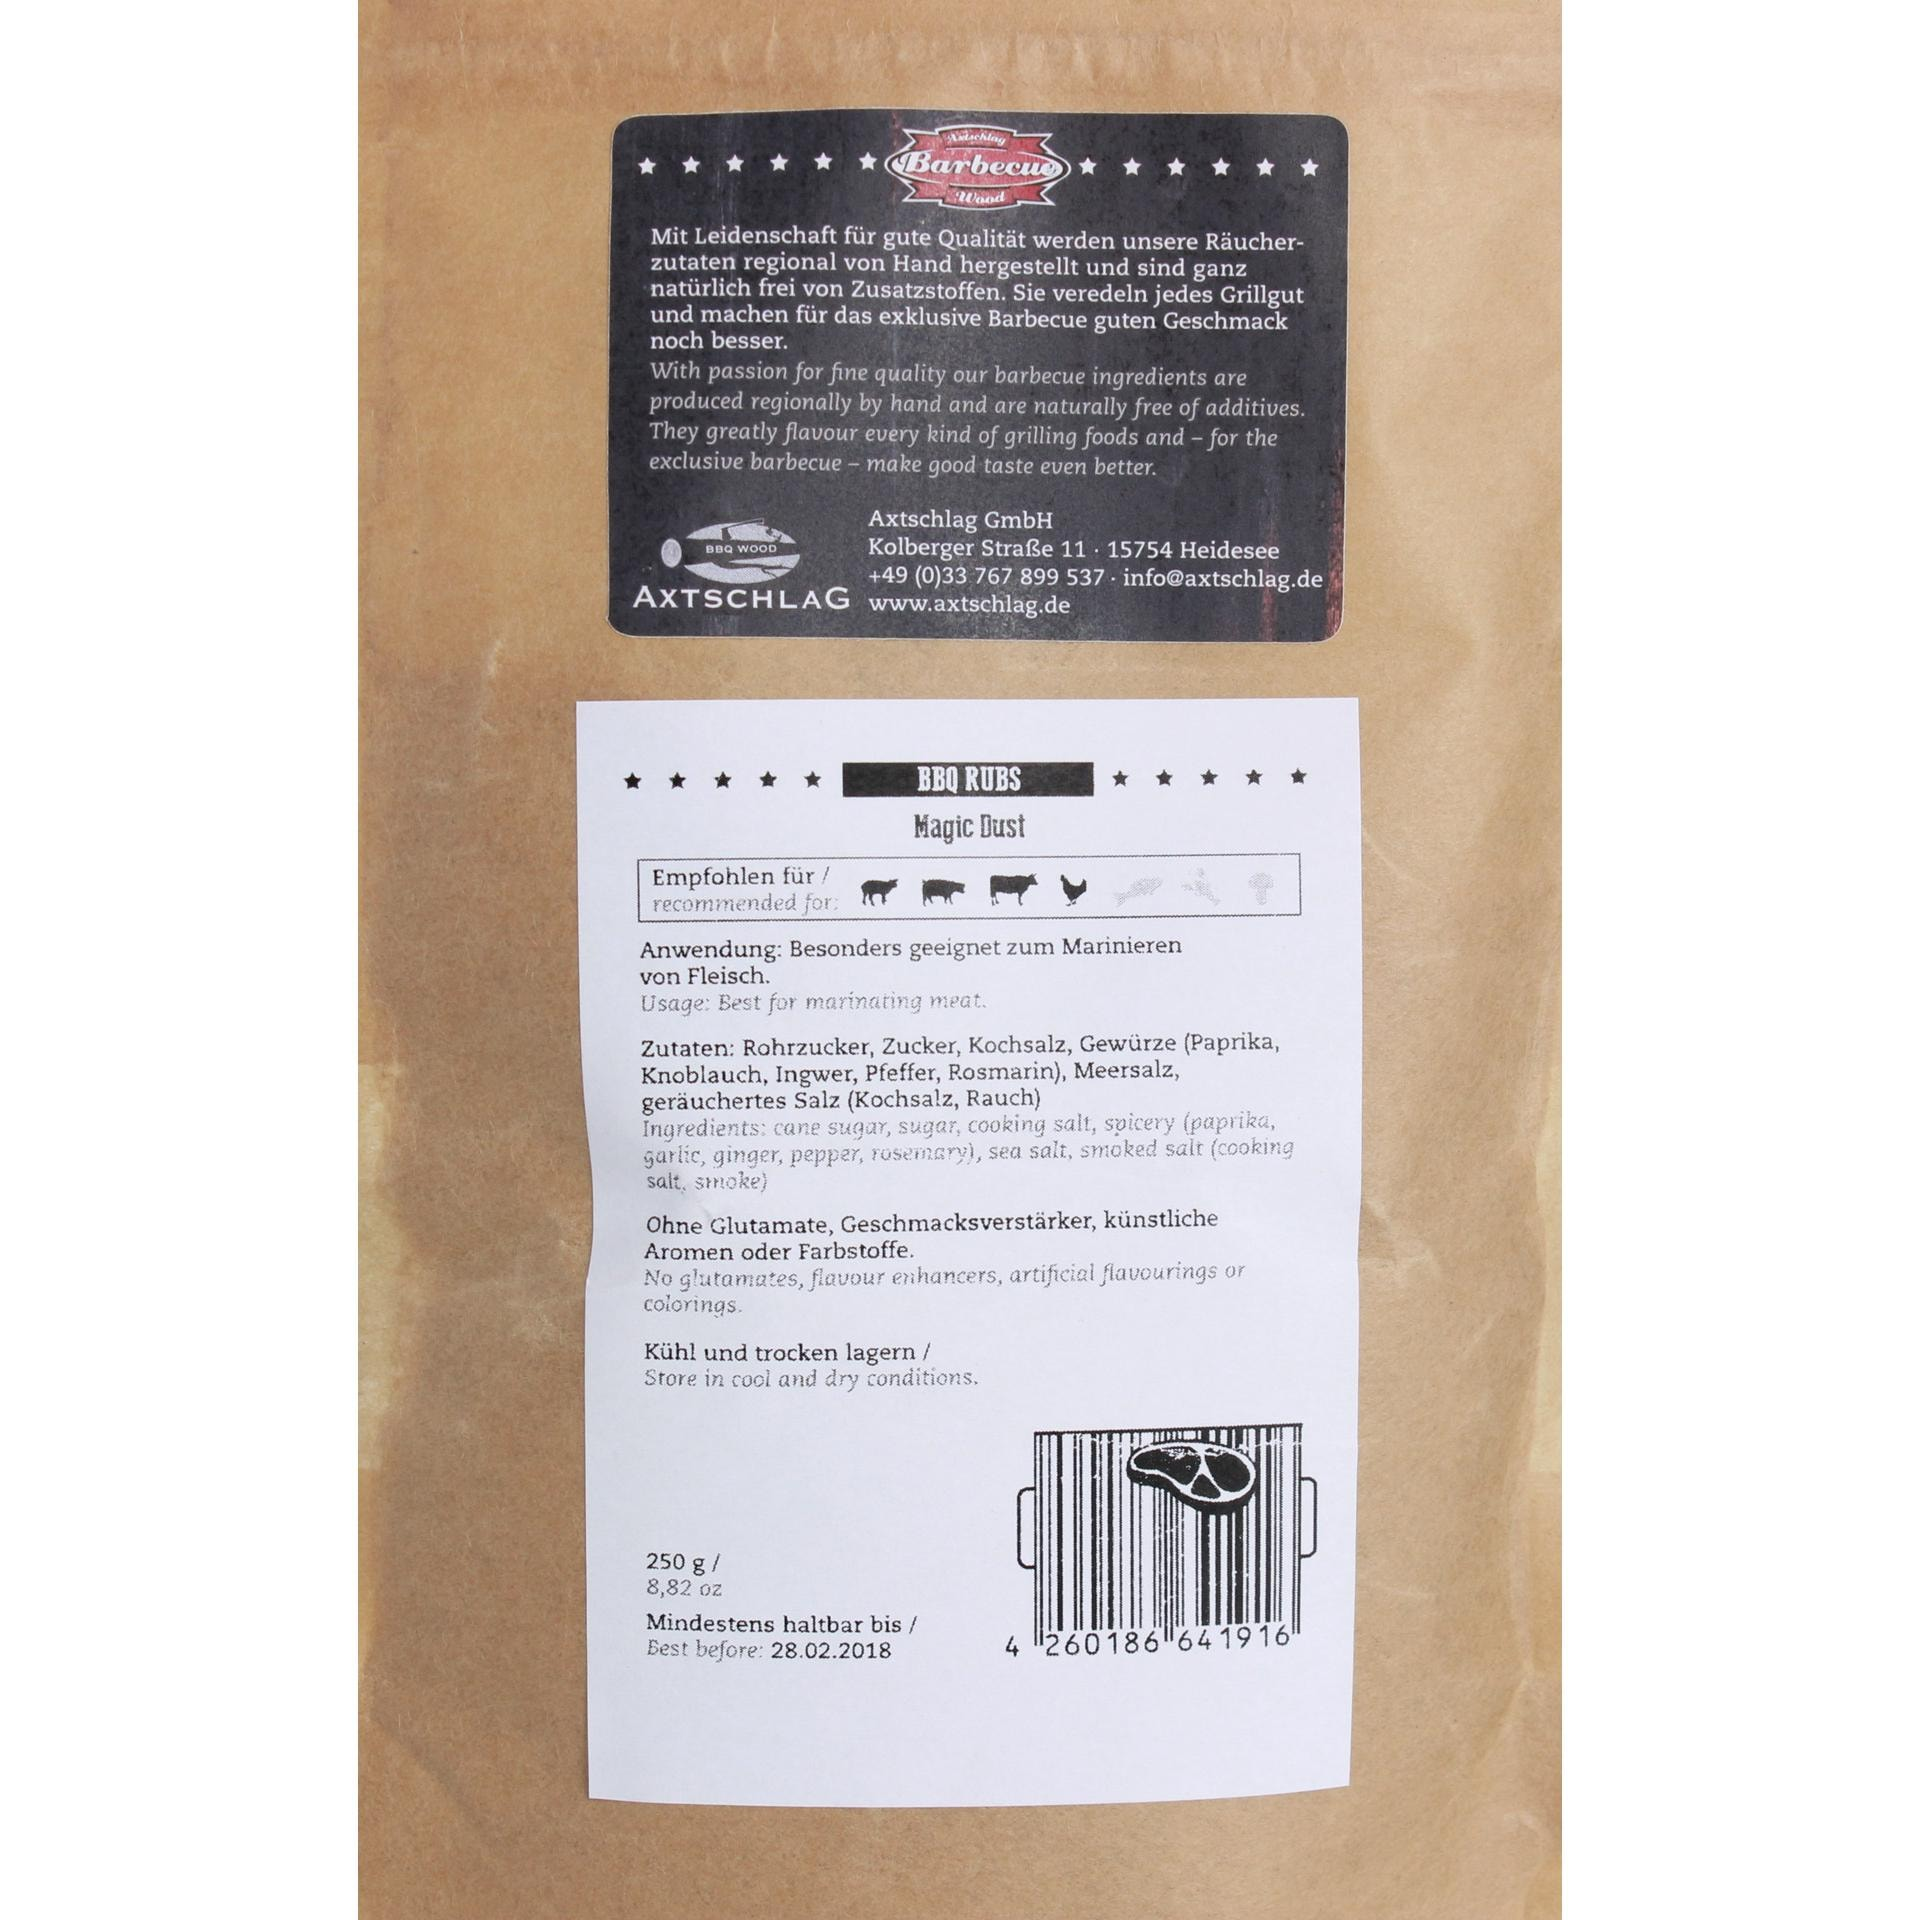 Axtschlag Barbecue Wood - Magic Dust BBQ Rubs Gewürzmischung - 250g